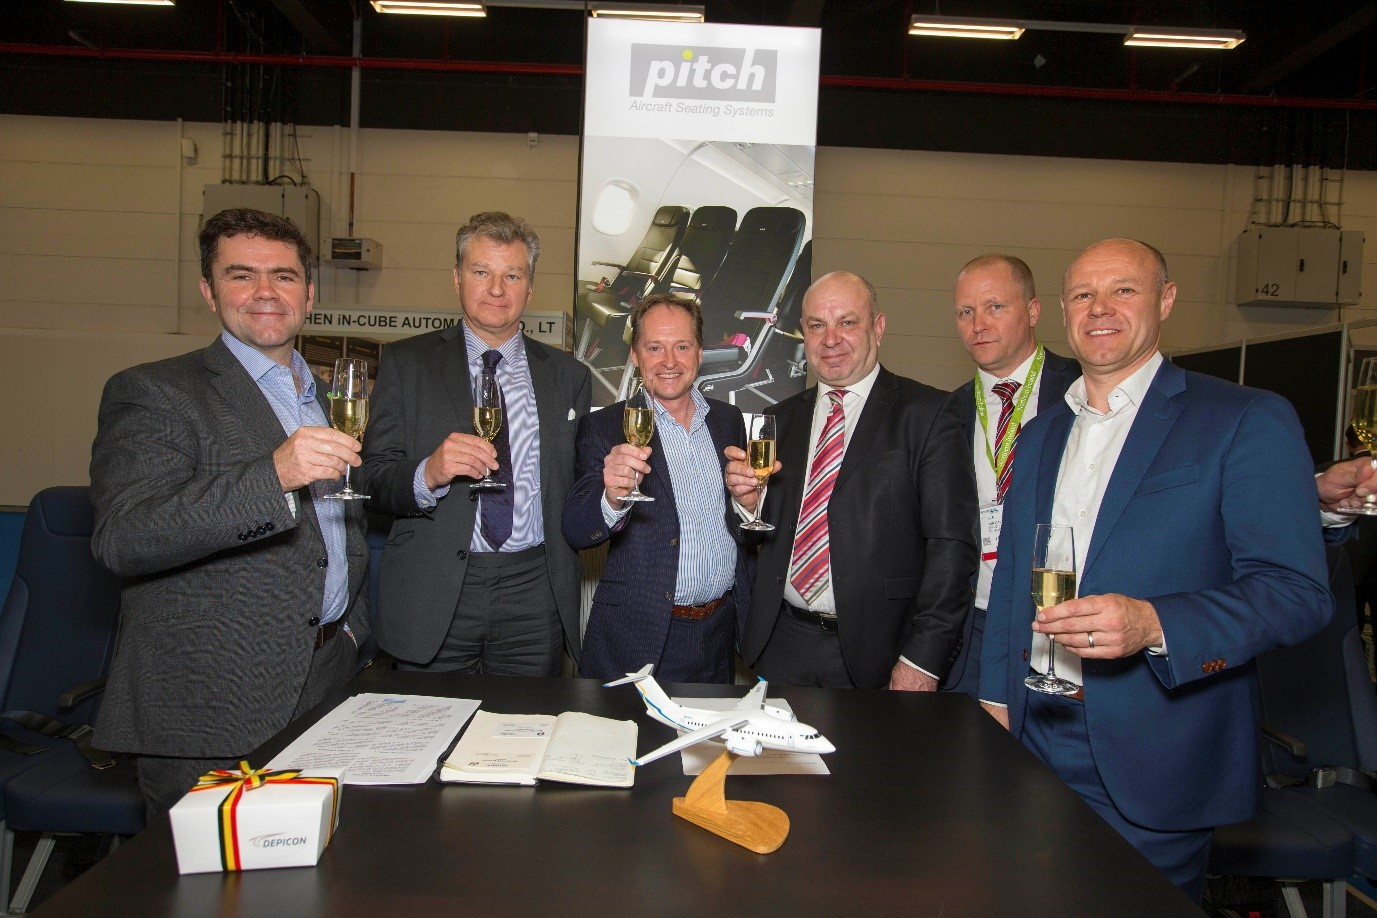 Mr Oleksandr Donets, president of the Antonov company, and Ralf-Dieter Montag-Girmes, president of the SAAL, celebrate the contract signing with the Pitch team in Hamburg.